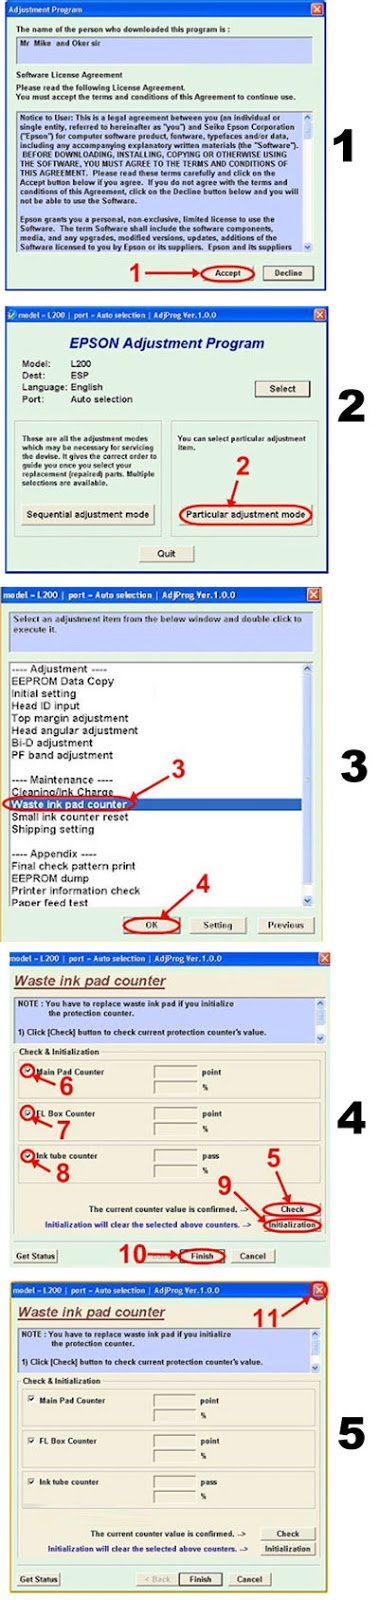 Epson L200 Ink Pad Resetter Software Free Download - paberpb